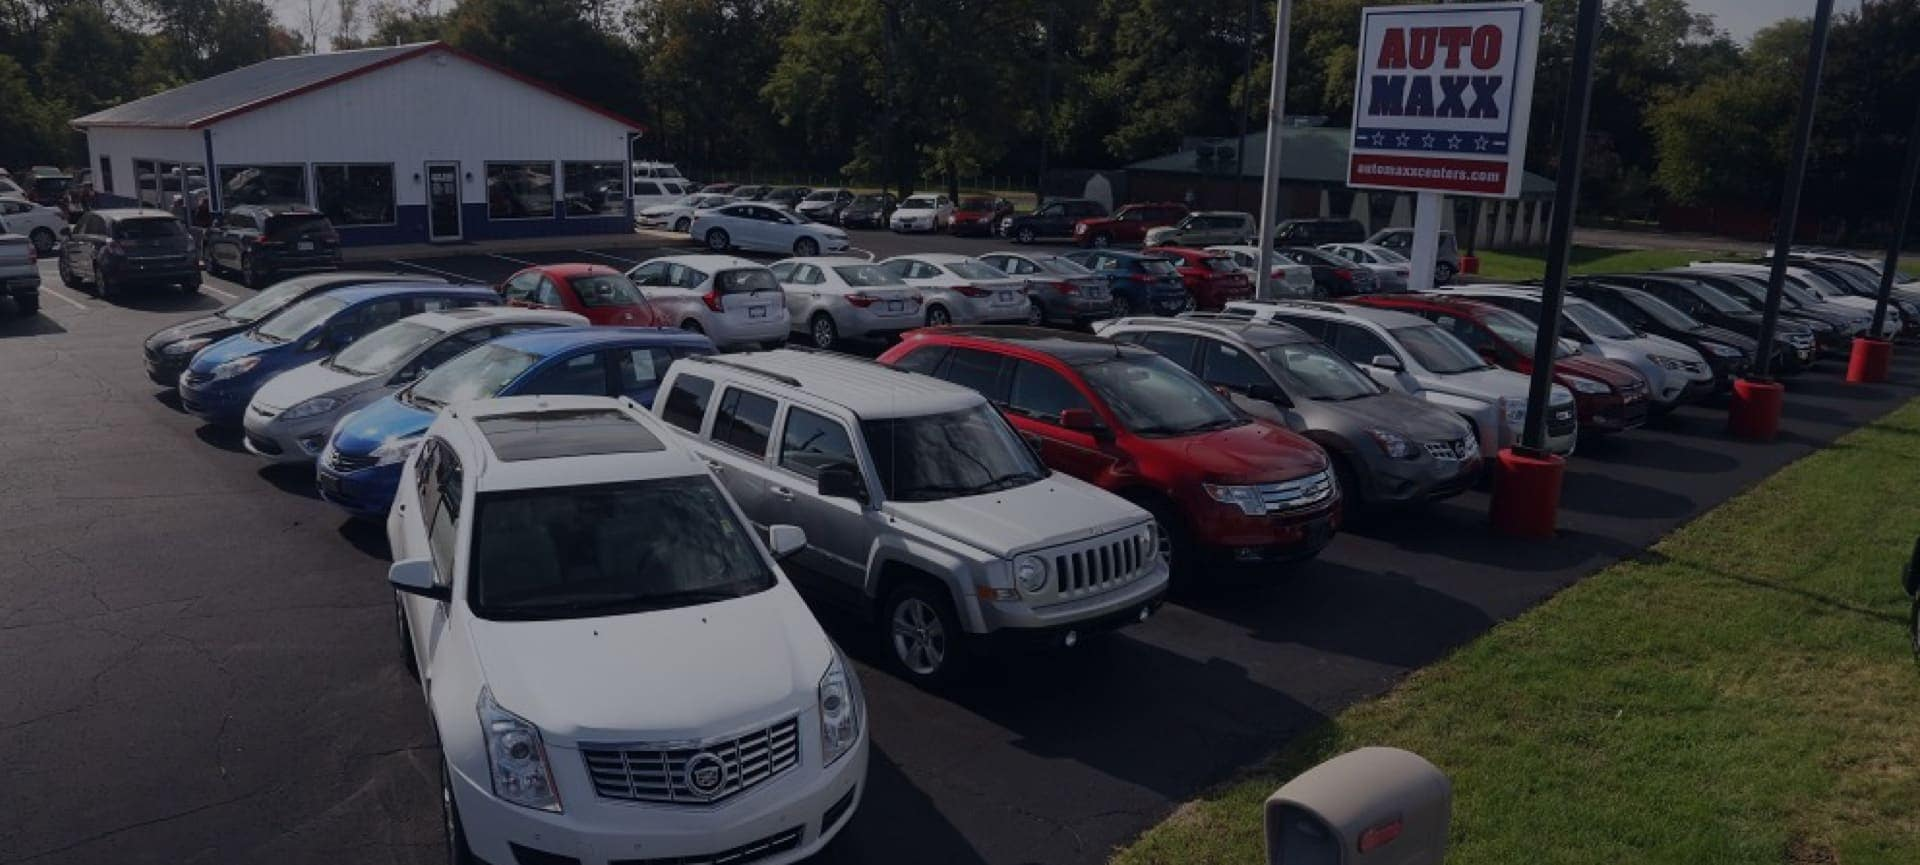 The dealership lot of Auto Maxx